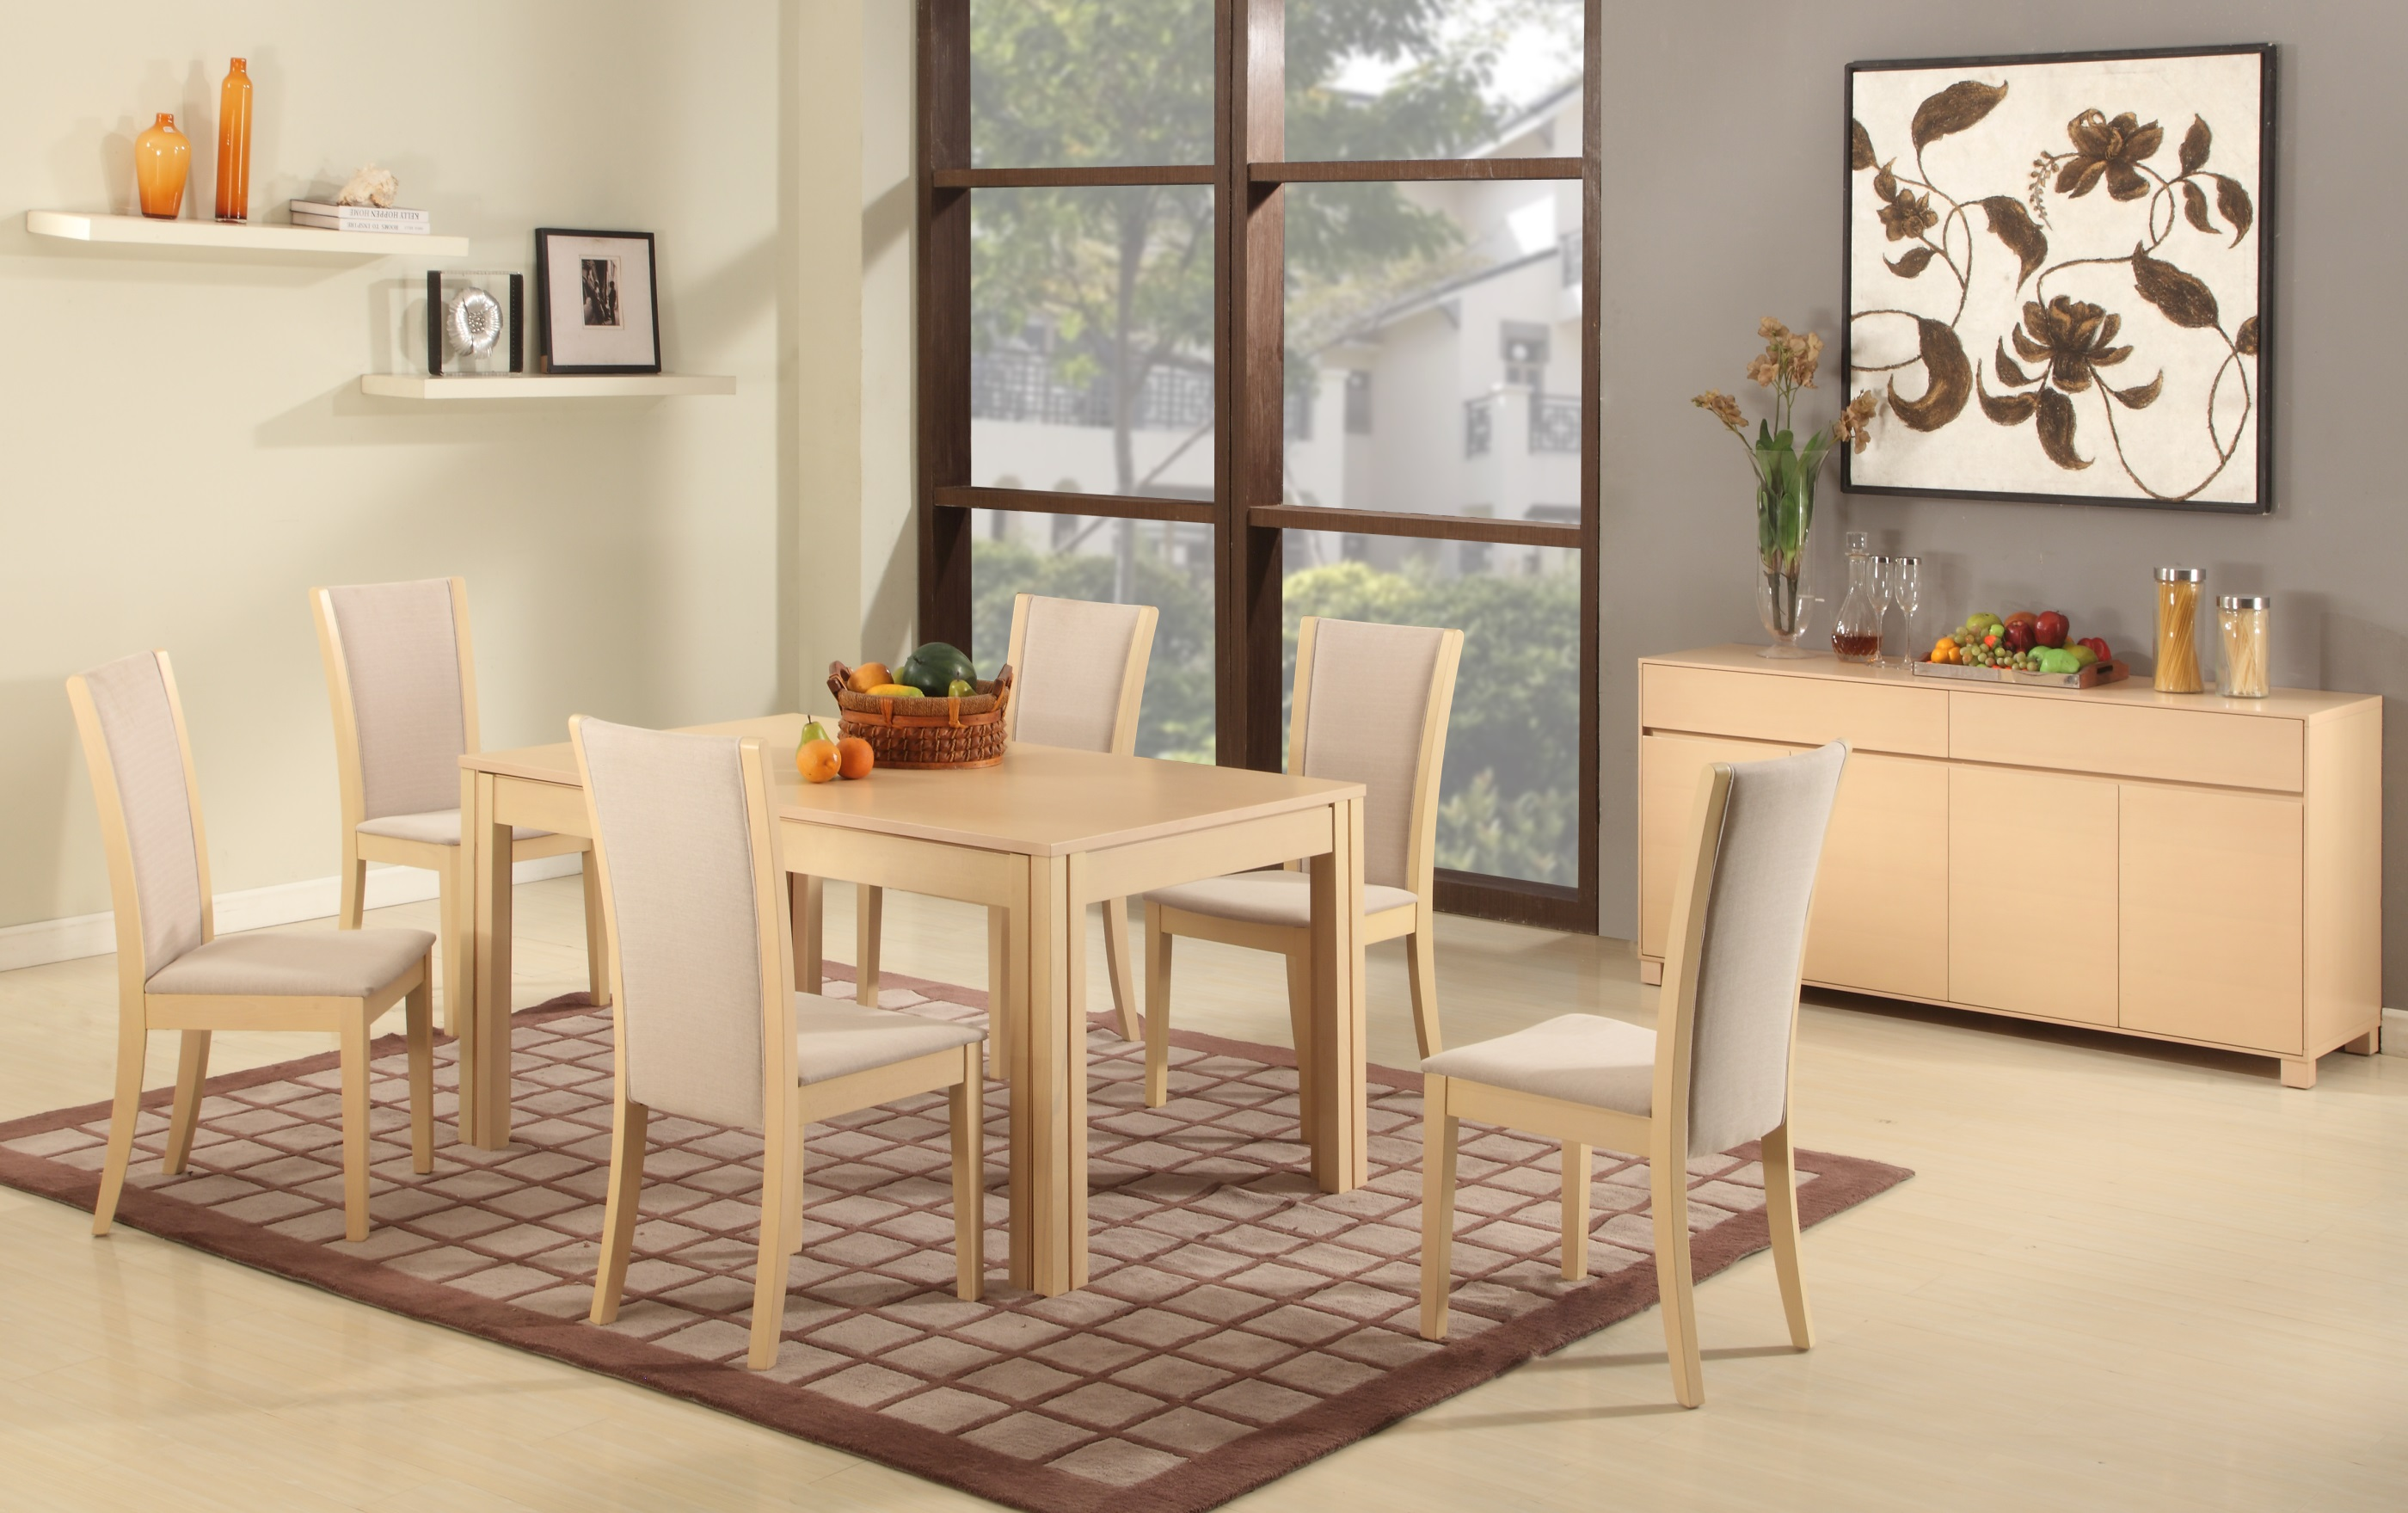 Extendable rectangular wooden and fabric seats designer for Light wood dining room sets